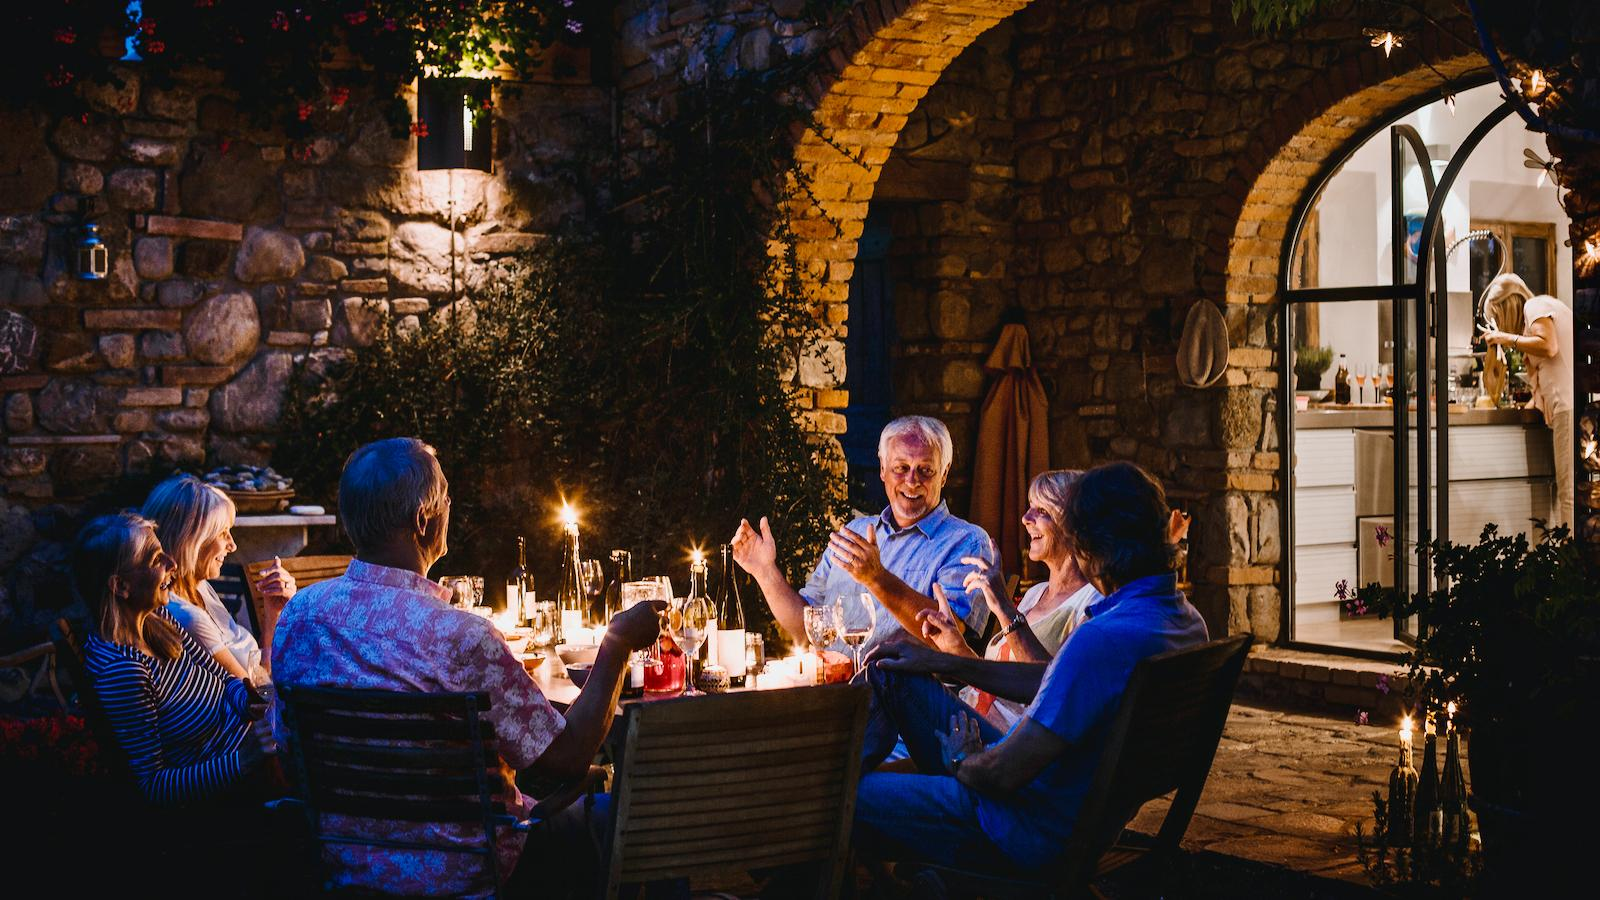 Researchers Find Moderate Wine Drinking Does Not Increase Dementia Risk